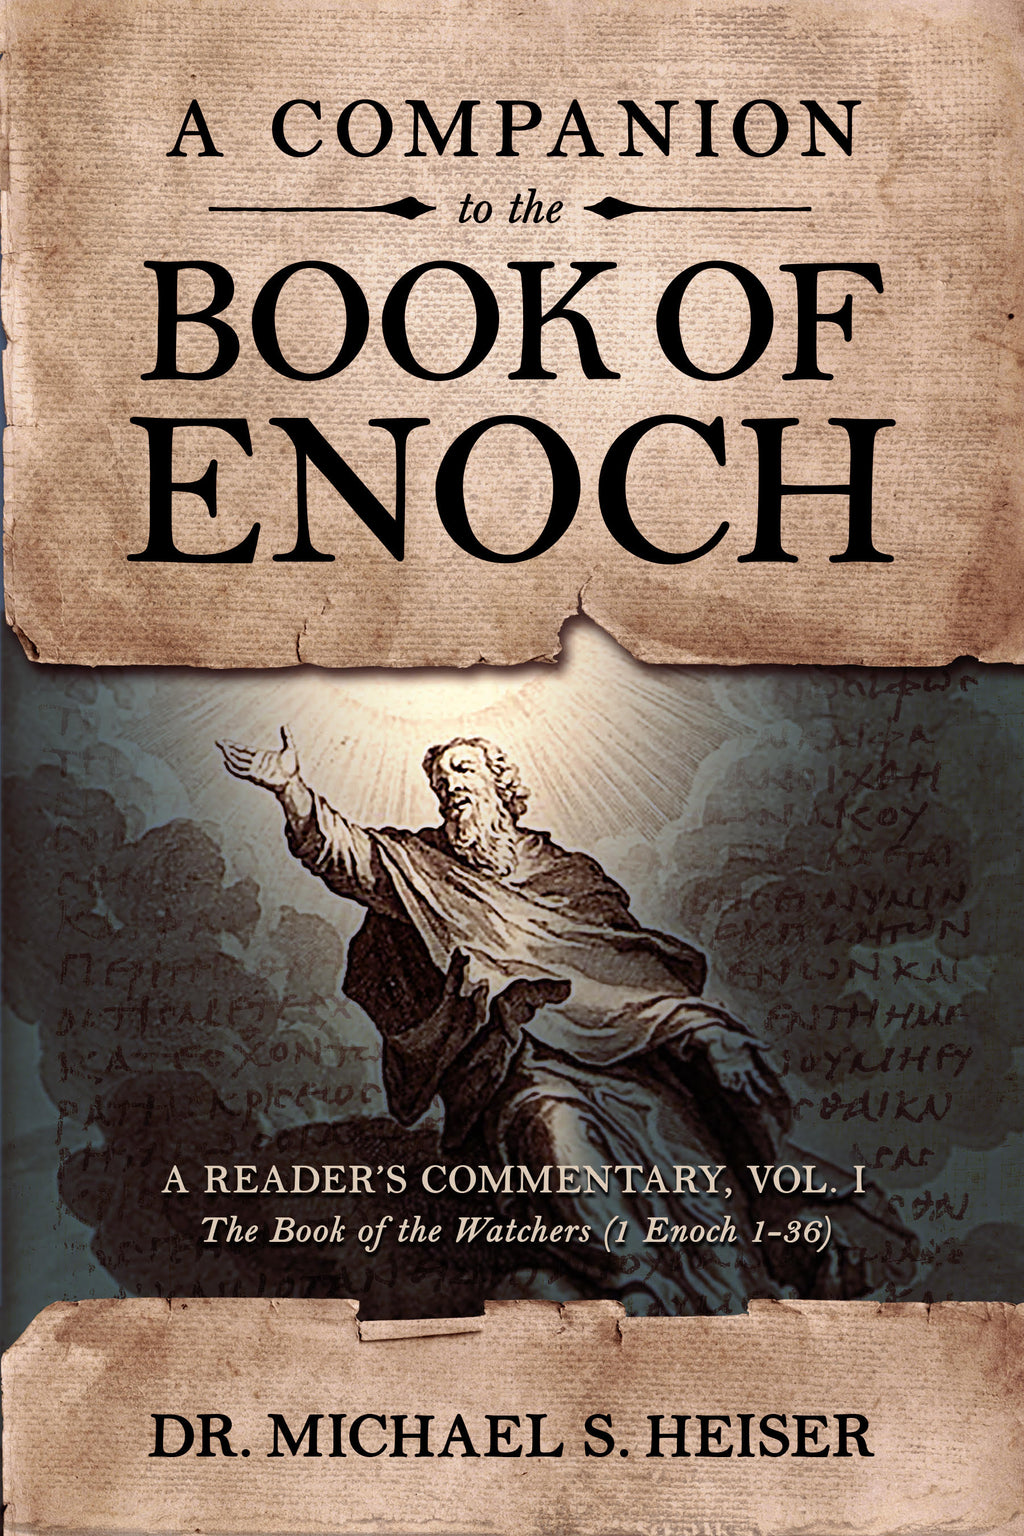 A Companion to the Book of Enoch